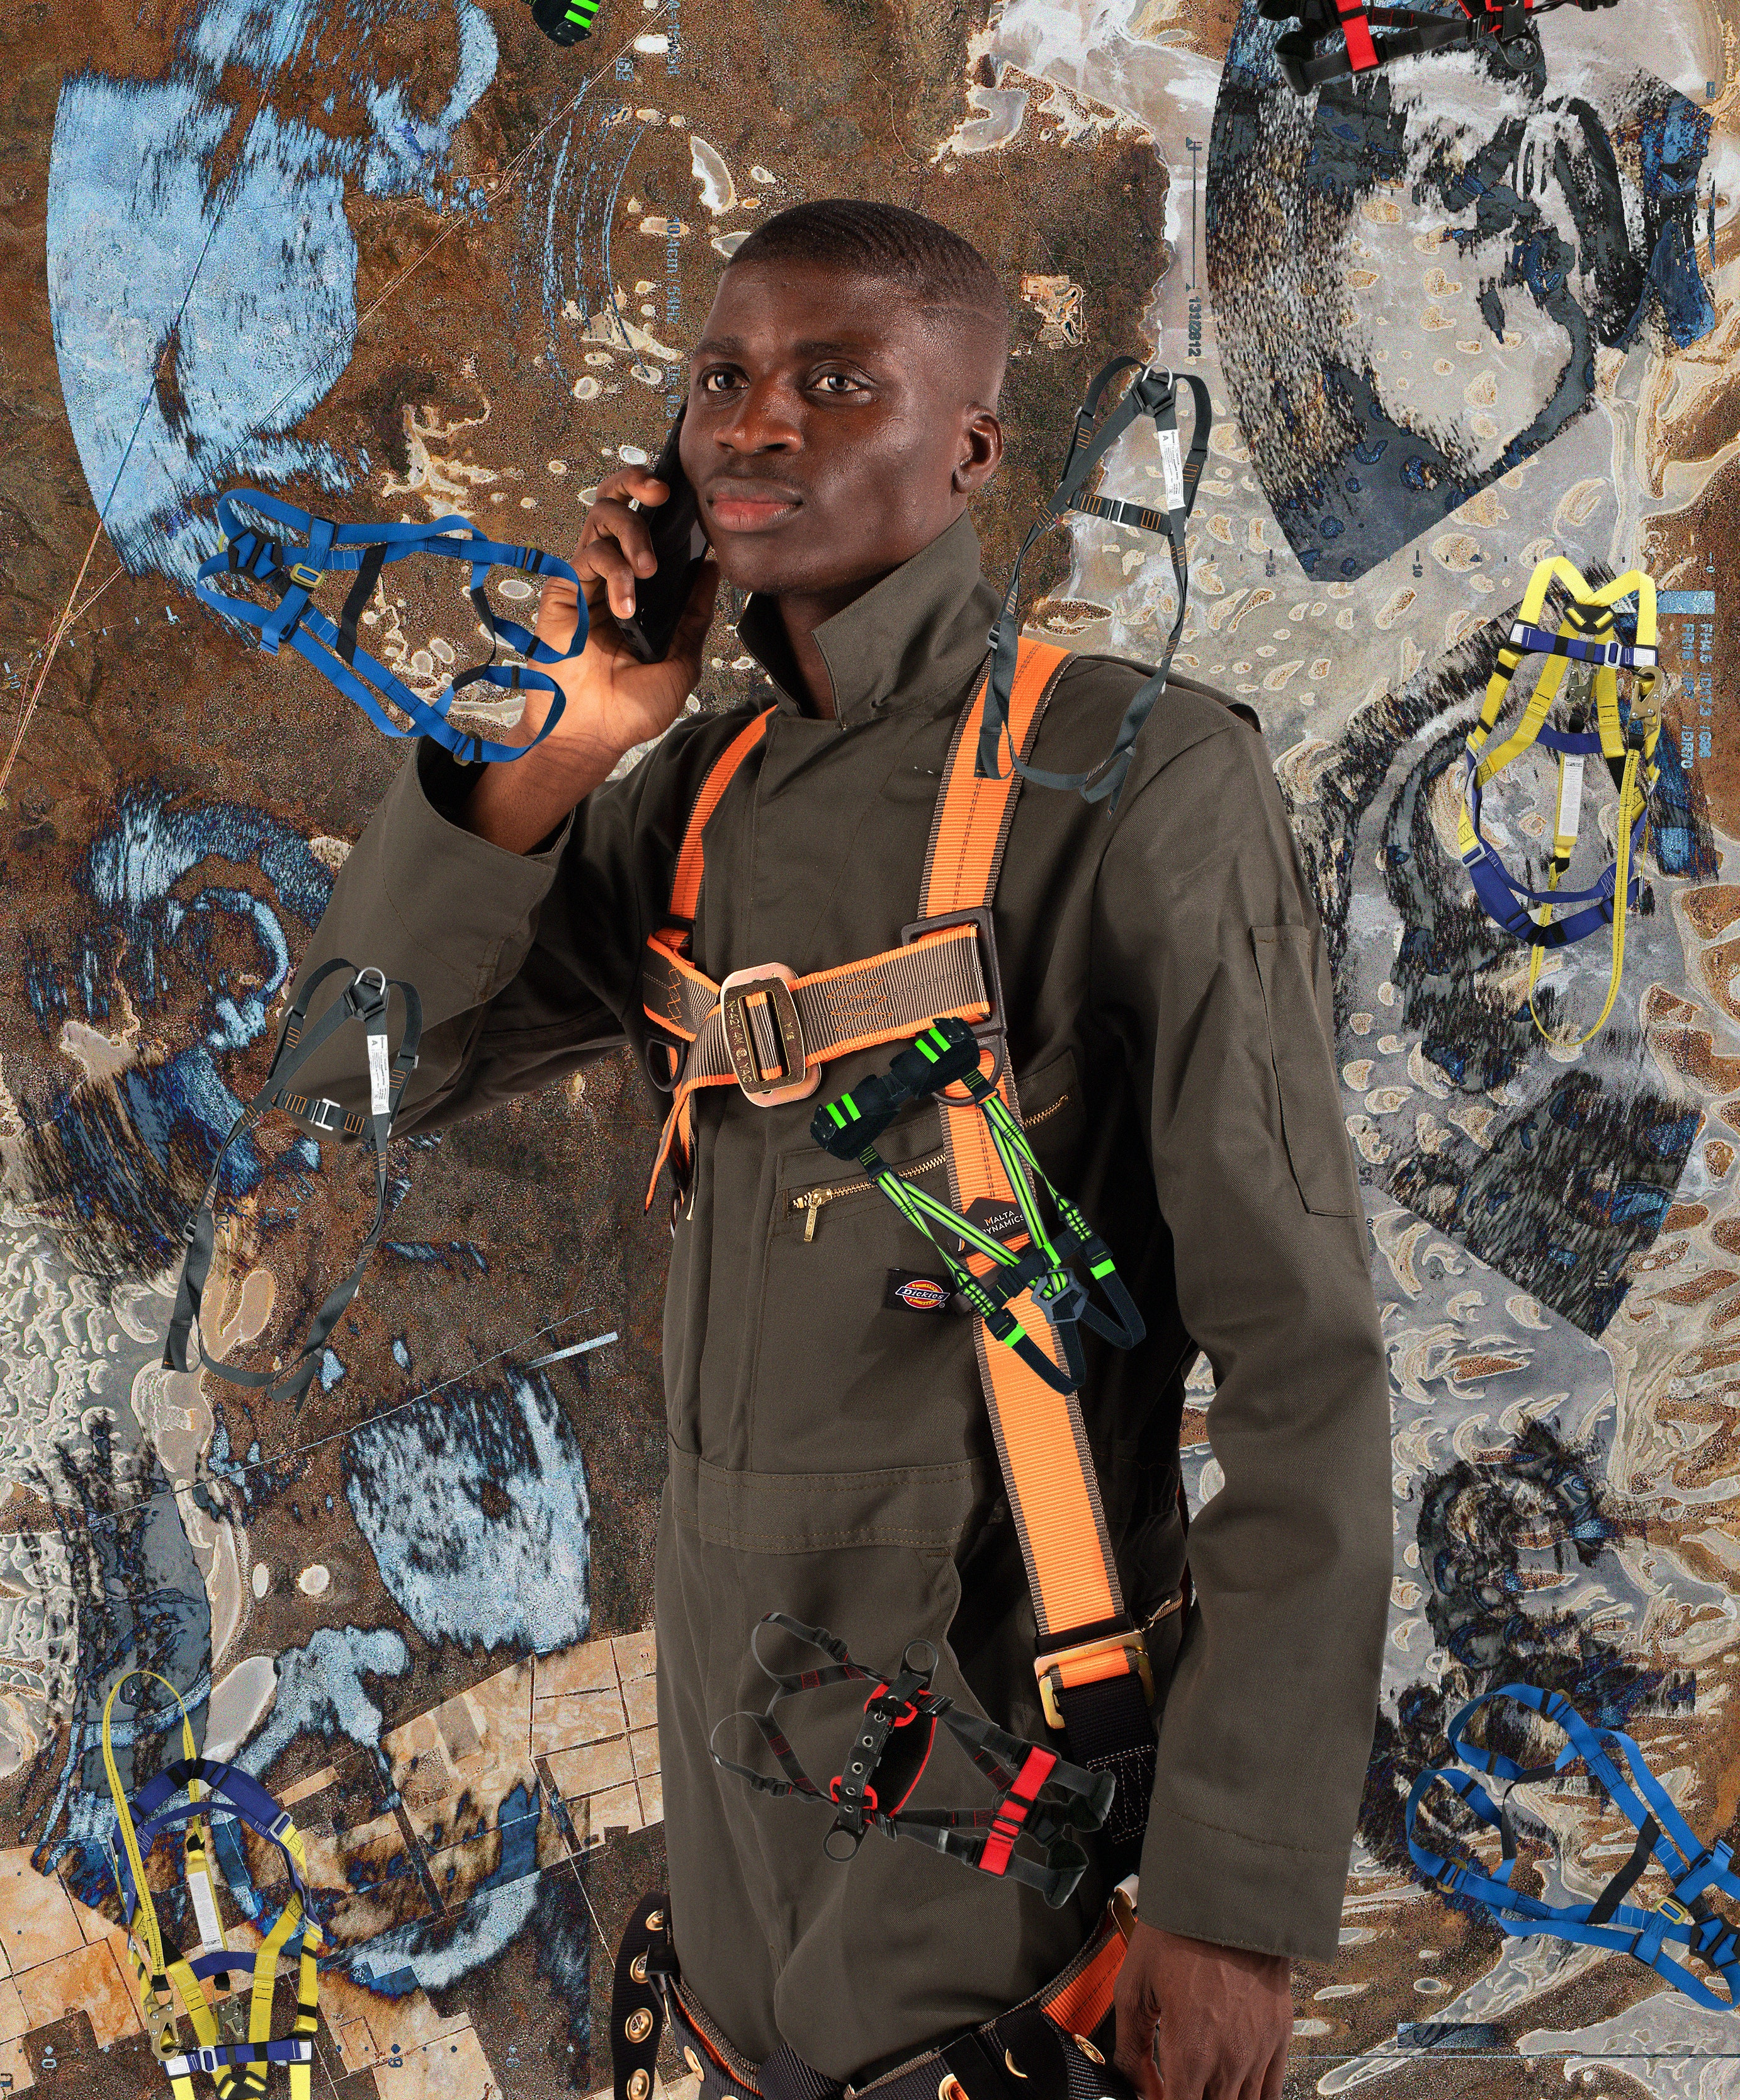 Stylized collage of man in work gear holding cell phone on top of abstracted background with harnesses and sonograms